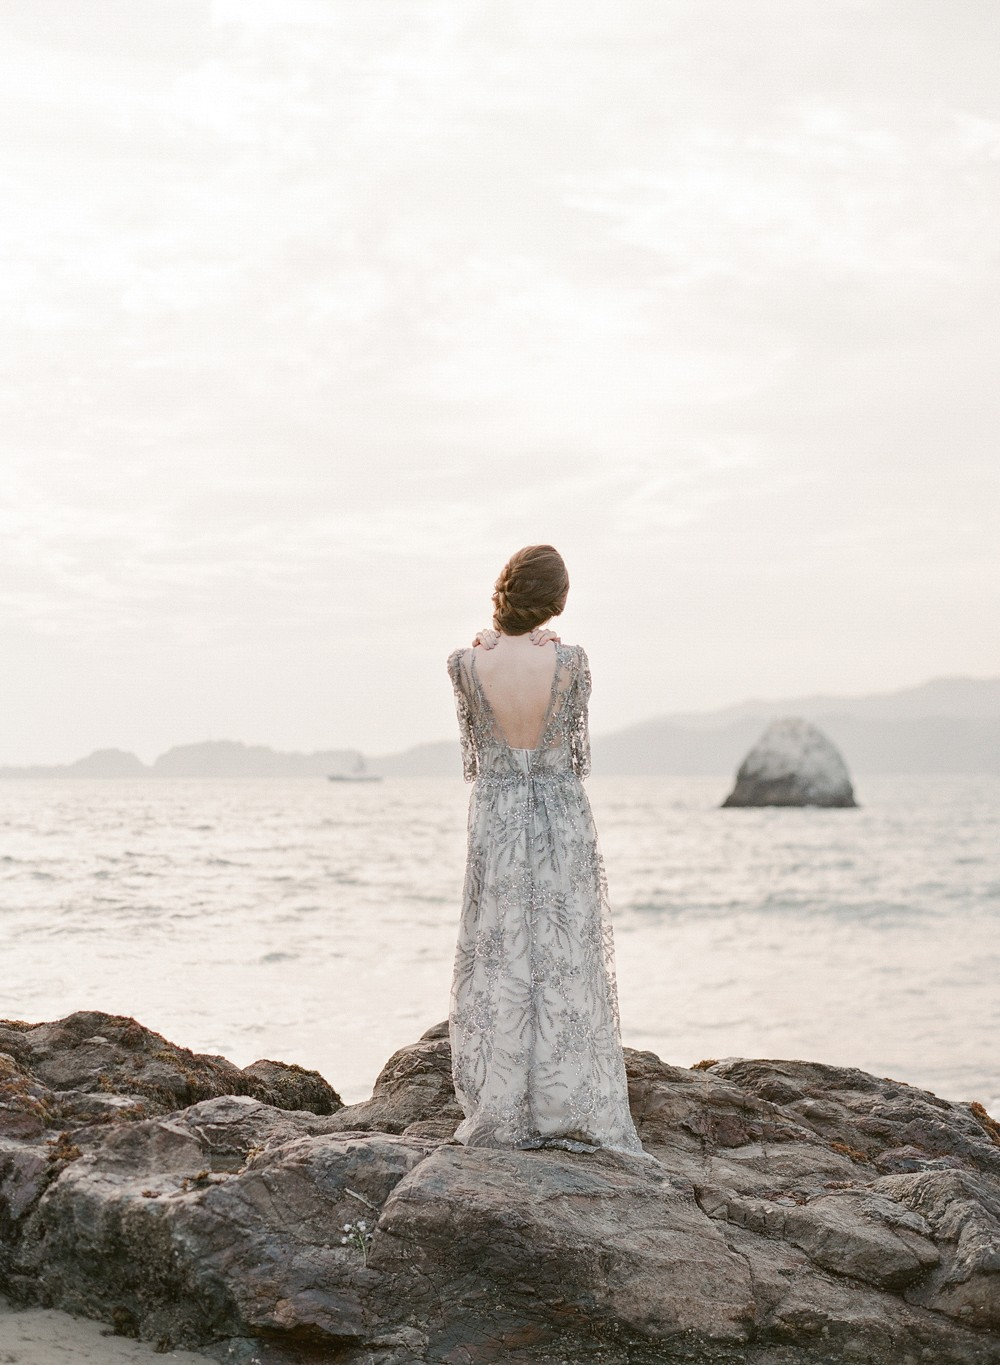 Pale Blue Oceanside Bridal Inspiration: Long Lost Love at Sea